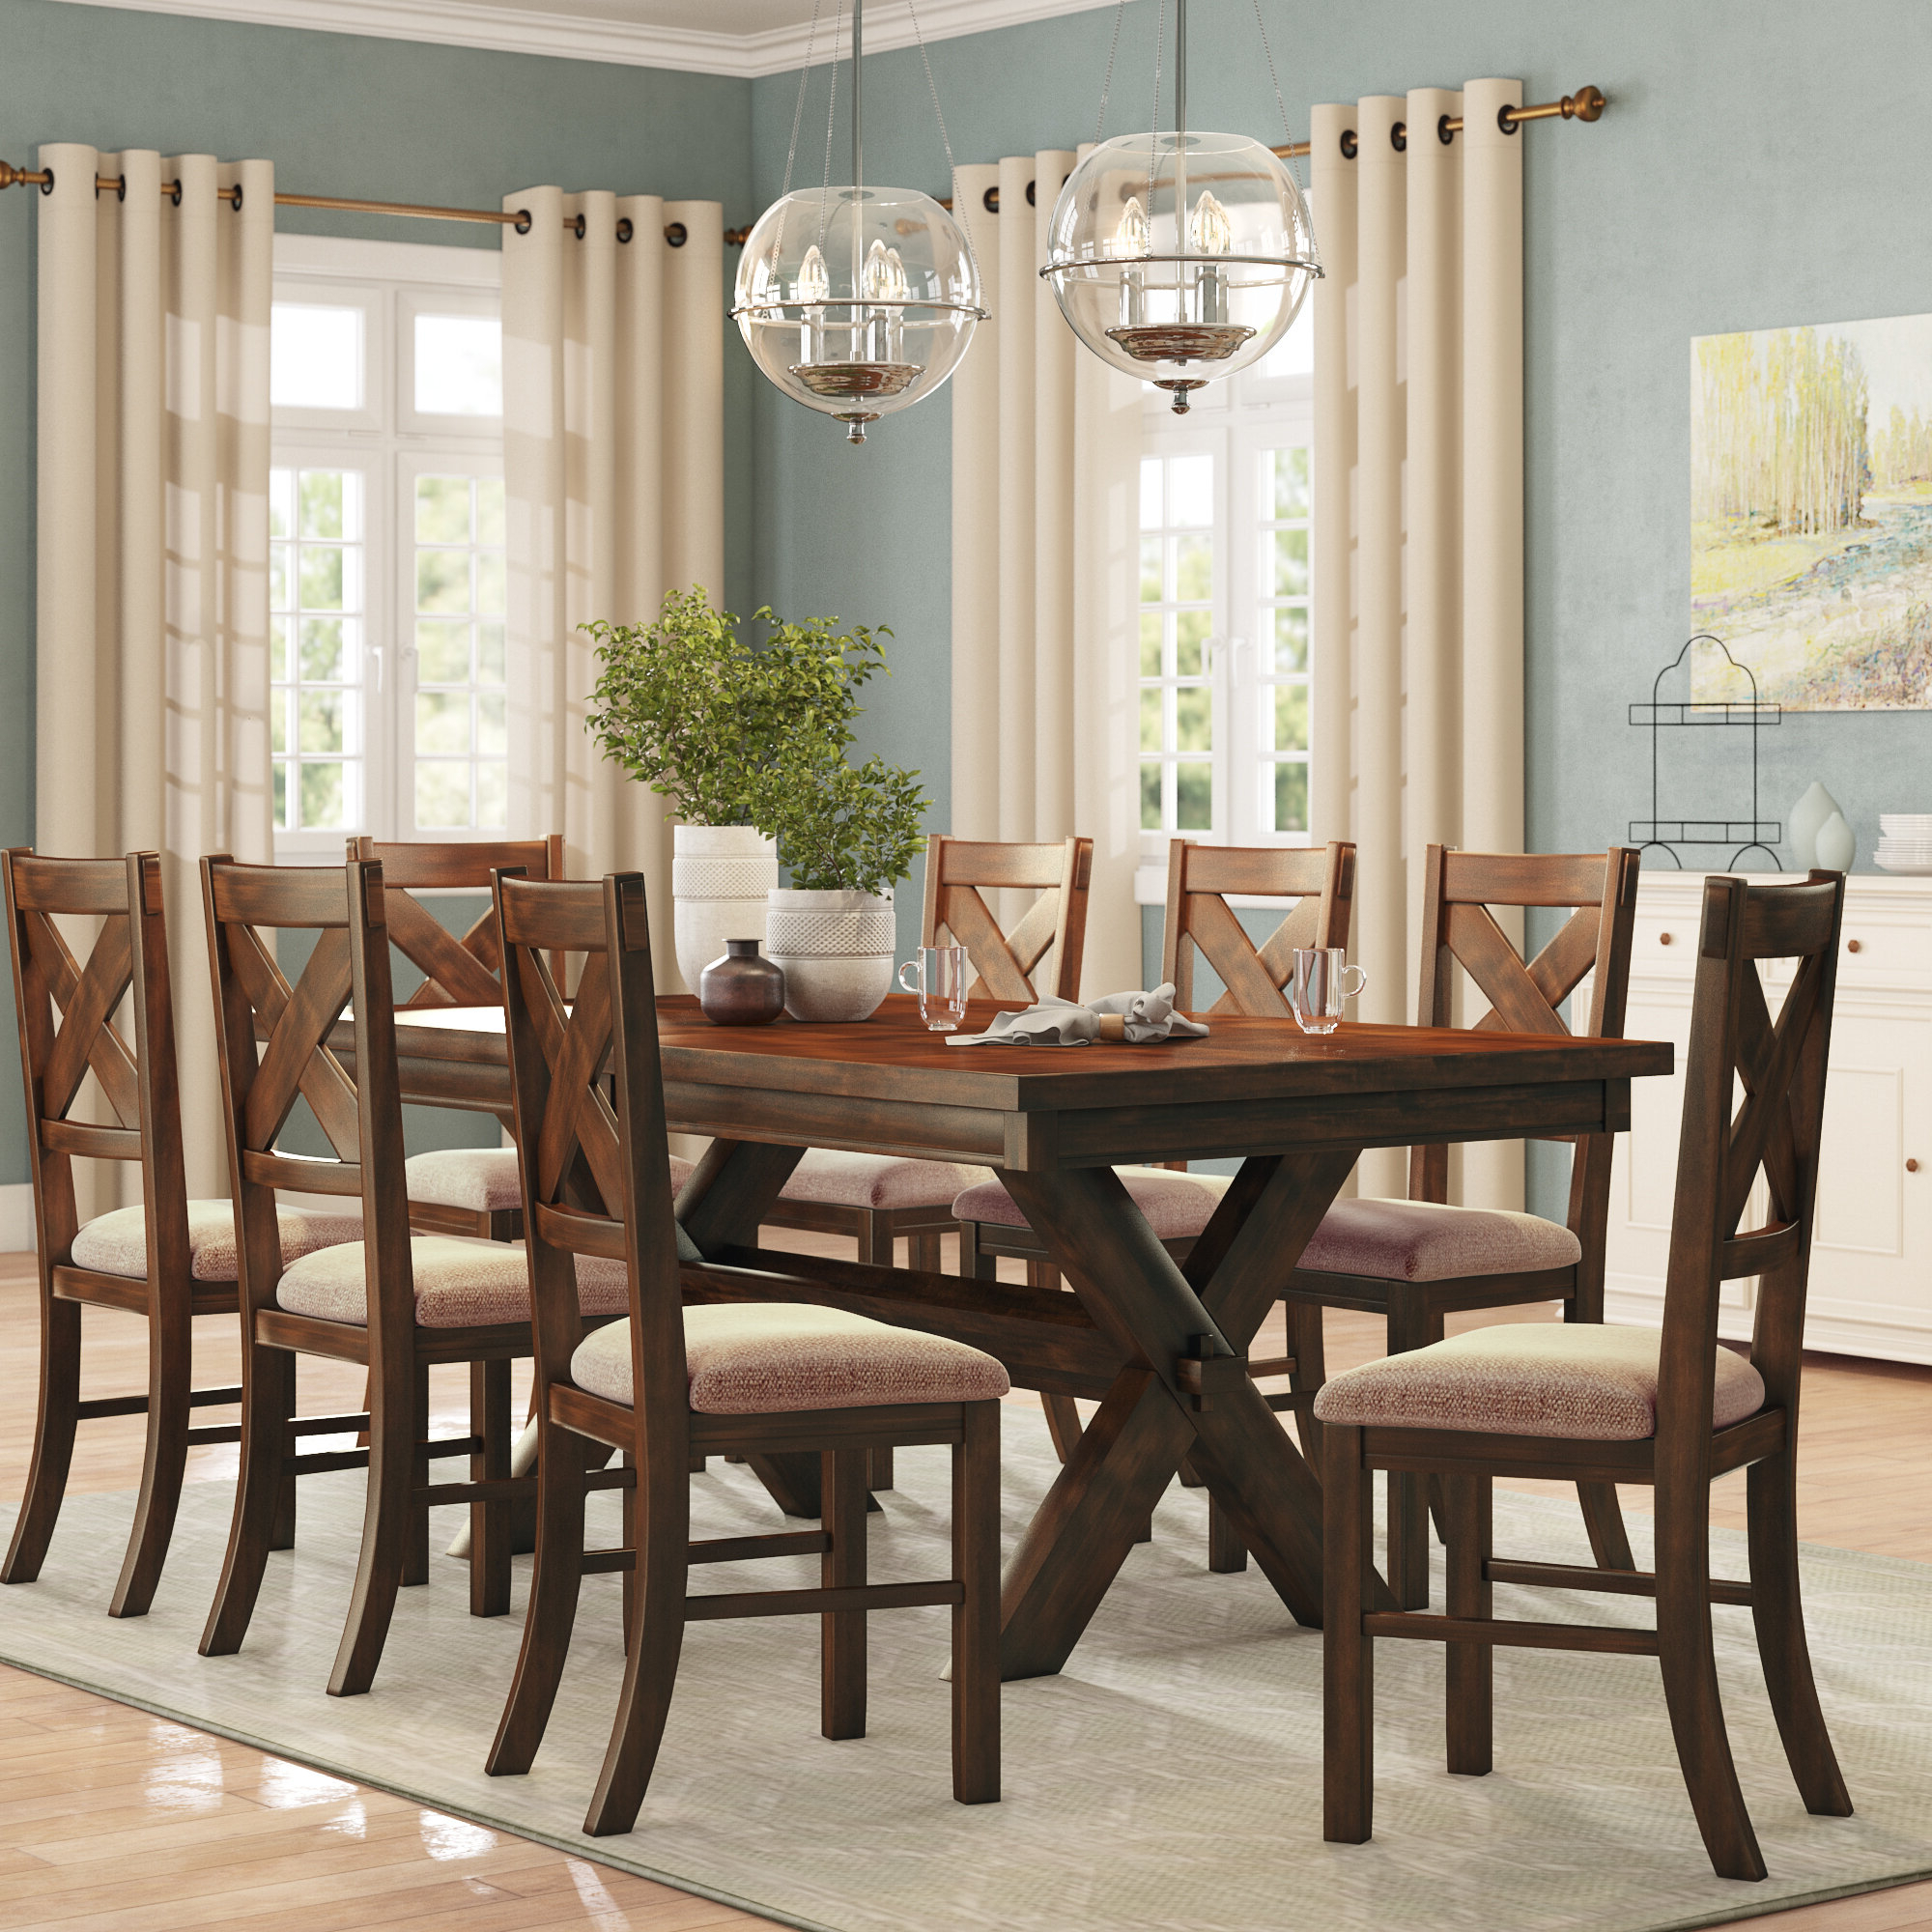 Well Liked Alcott Hill Warsaw 9 Piece Extendable Dining Set & Reviews Regarding Alamo Transitional 4 Seating Double Drop Leaf Round Casual Dining Tables (View 24 of 26)